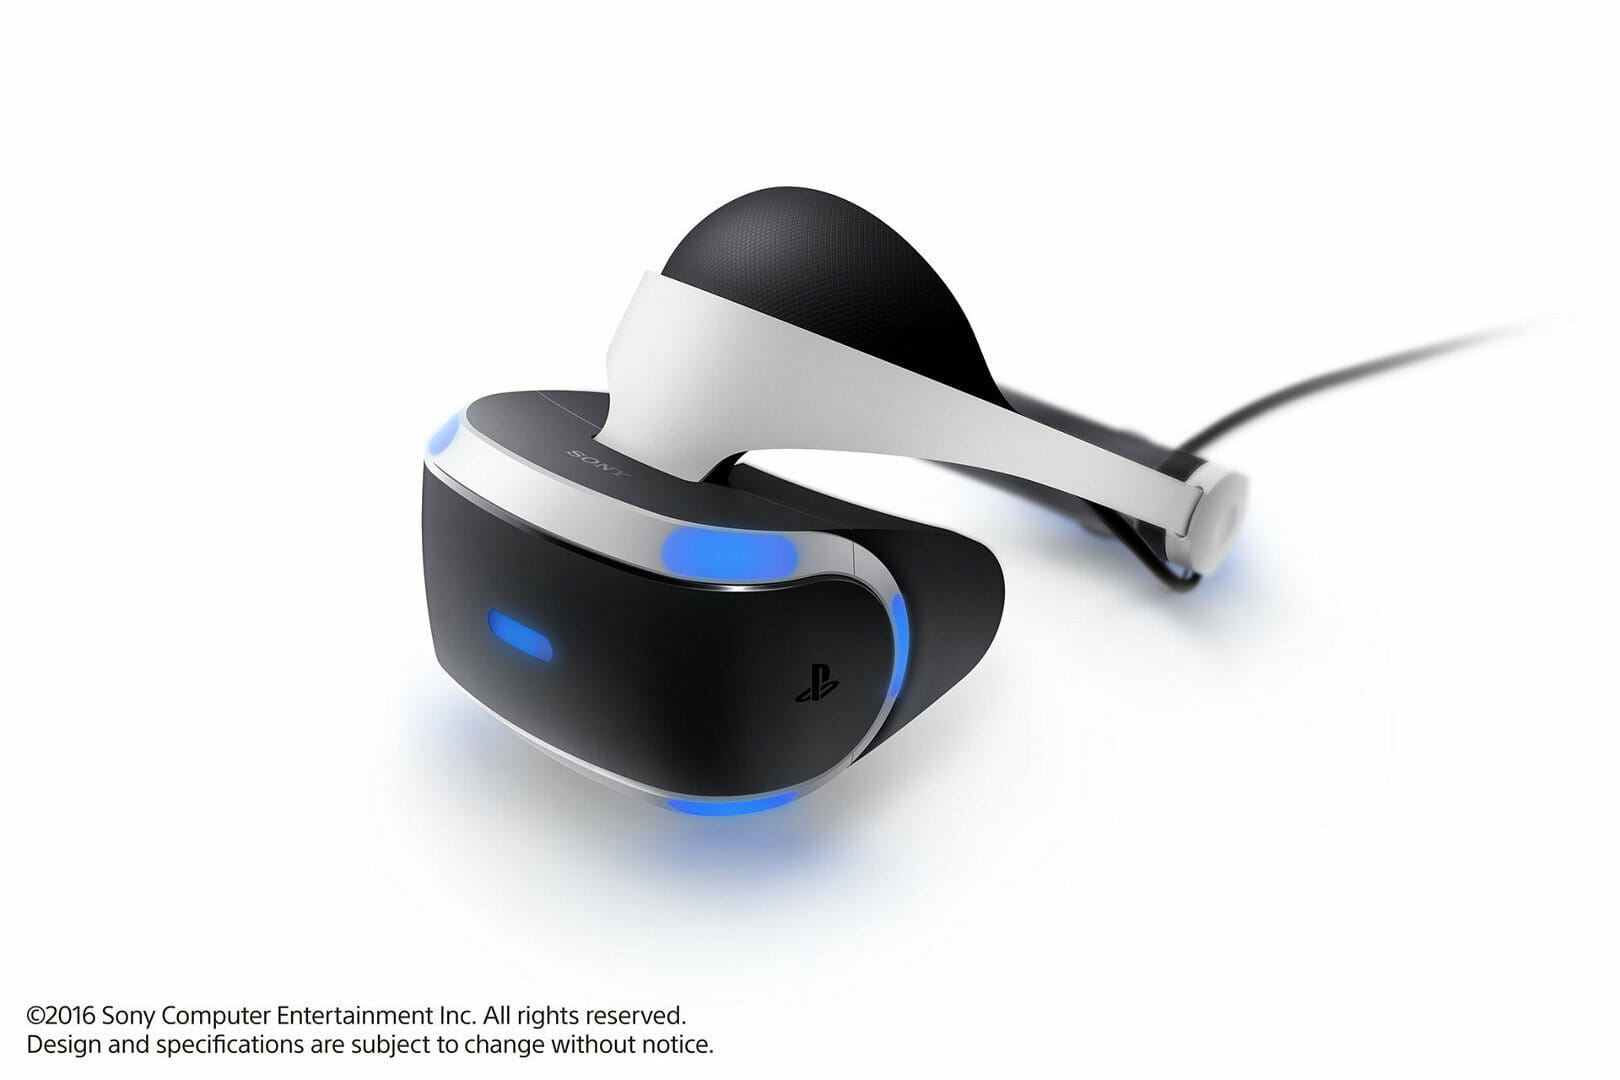 PlayStation VR headsets